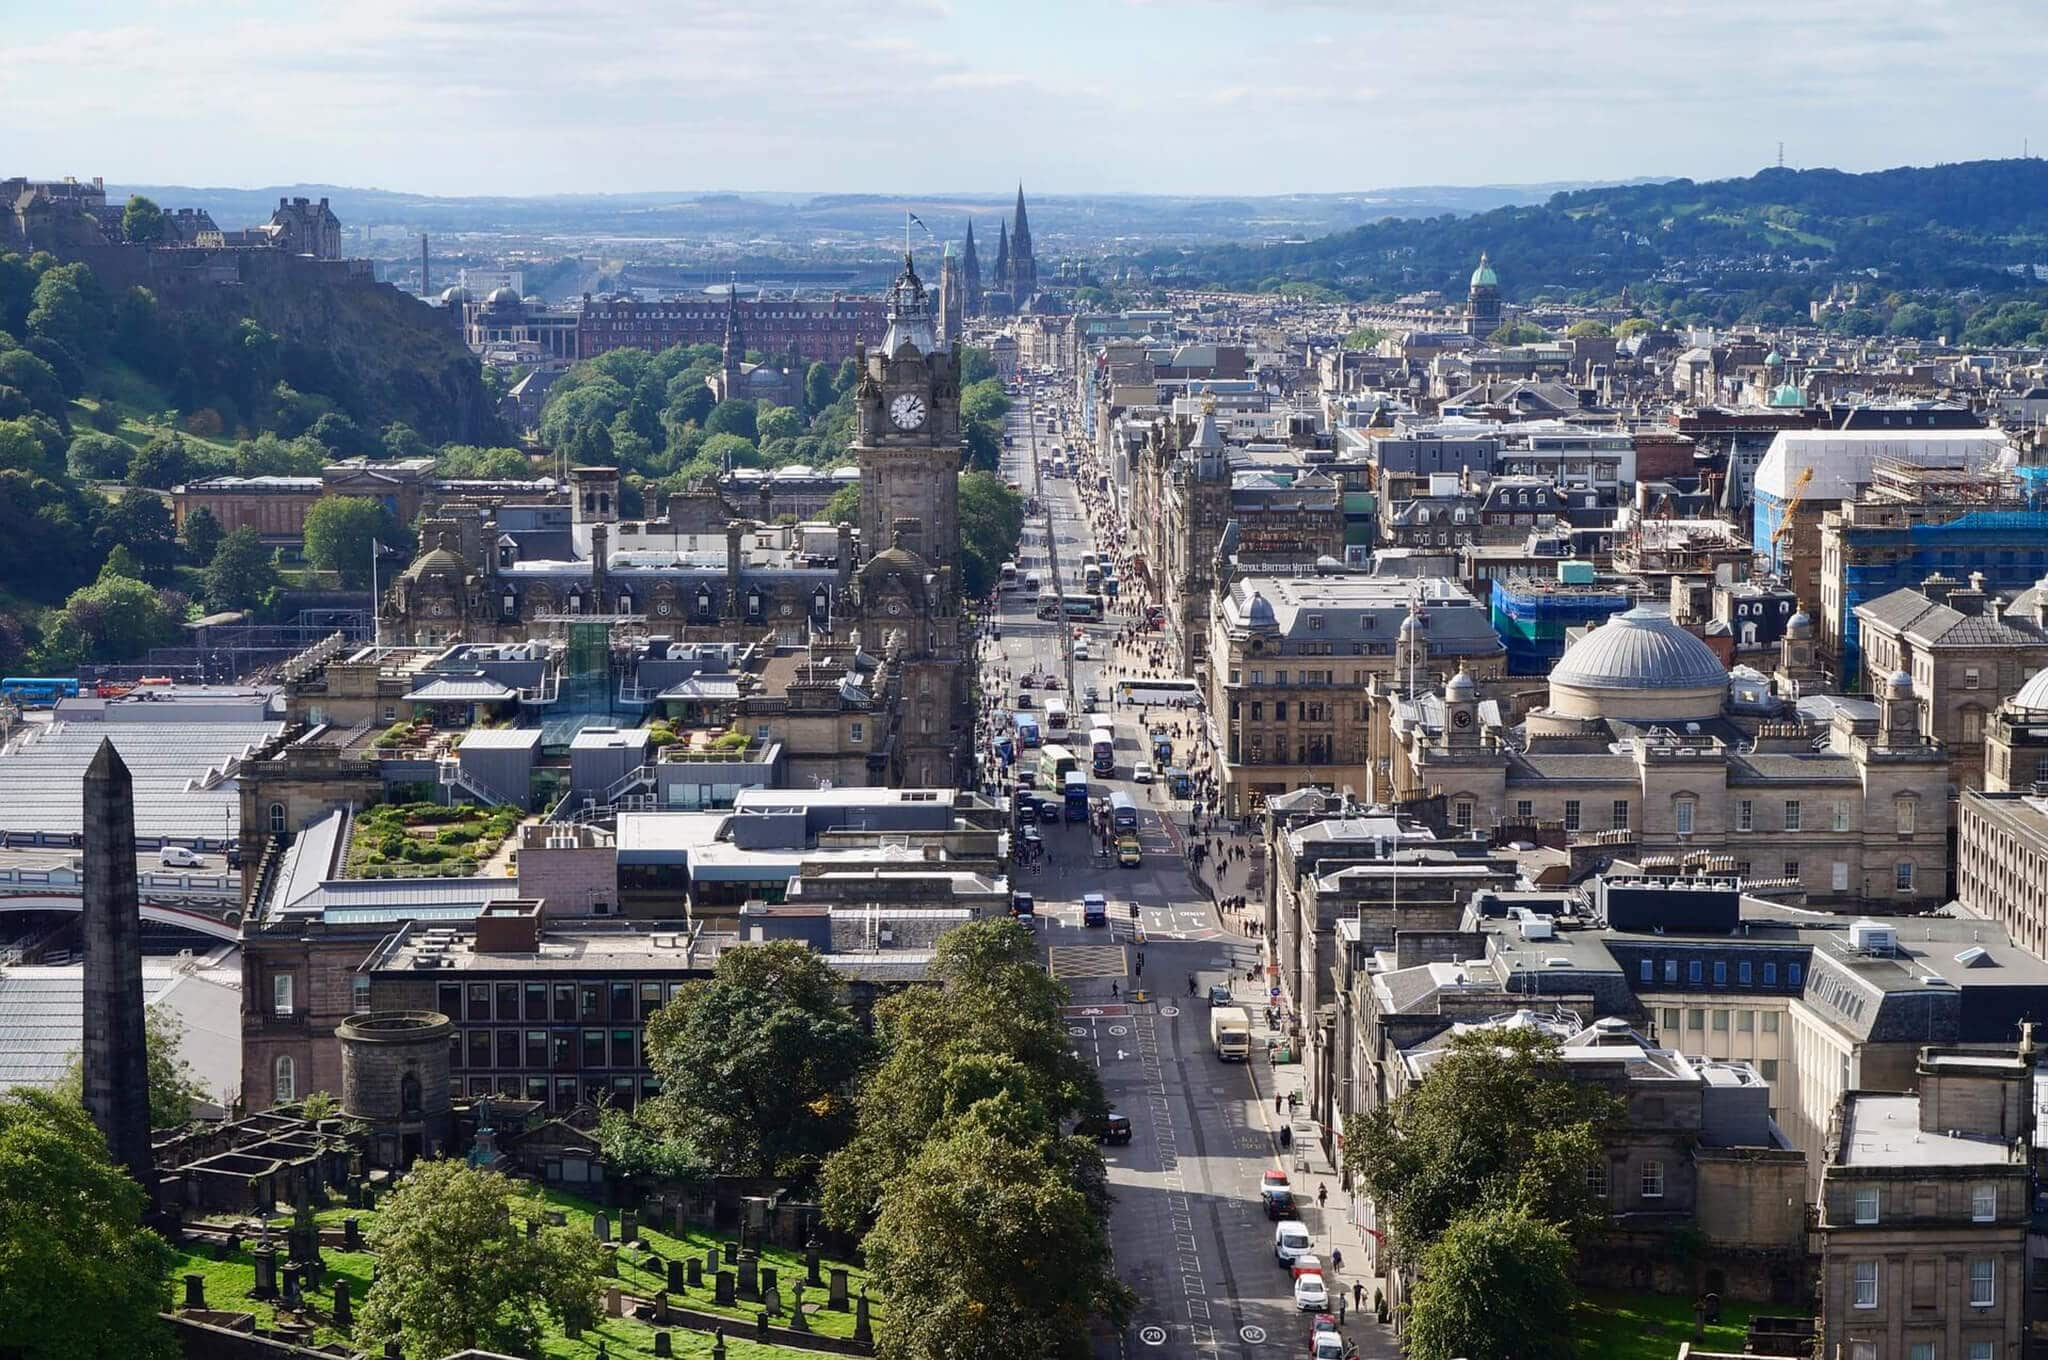 Moving to edinburgh 3 looking for new jobs, leaving your loved ones, and selling your possessions when moving to a different place can be tough. There are many things you need to take into consideration before moving away. To help make it easier for you, here are some things to do before and after the move.